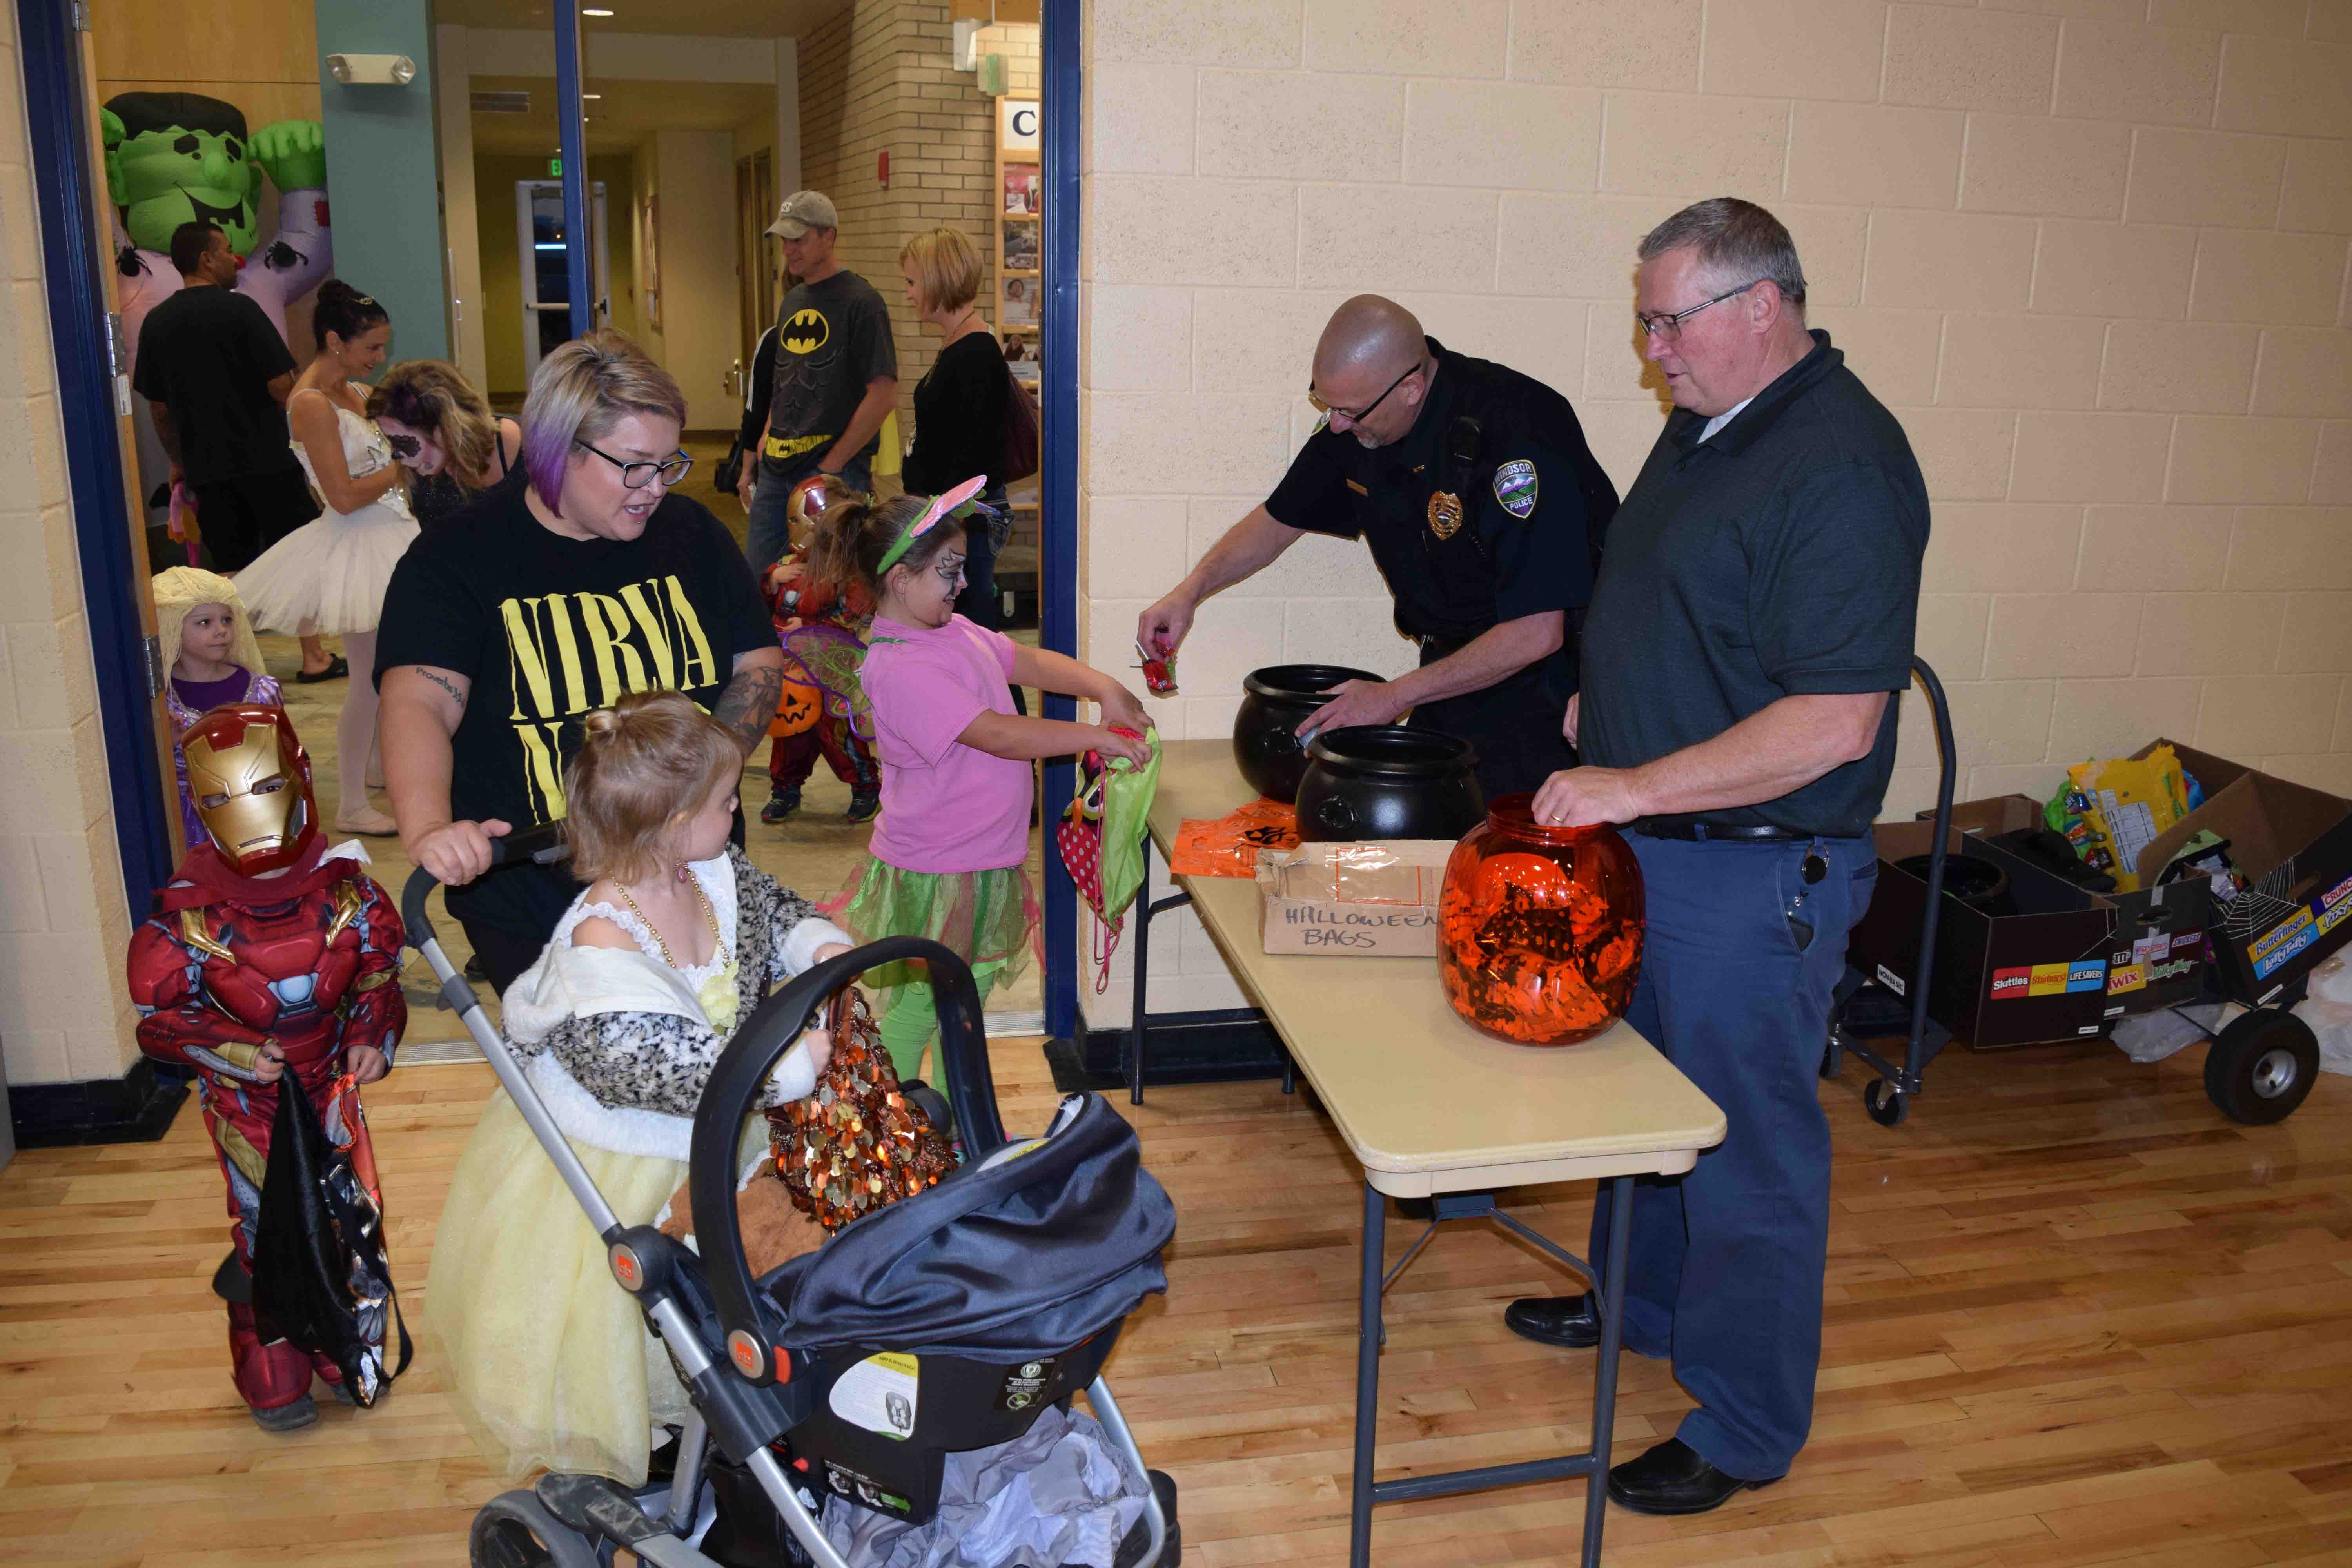 Two police officers participating in a Halloween event with young children and their parents